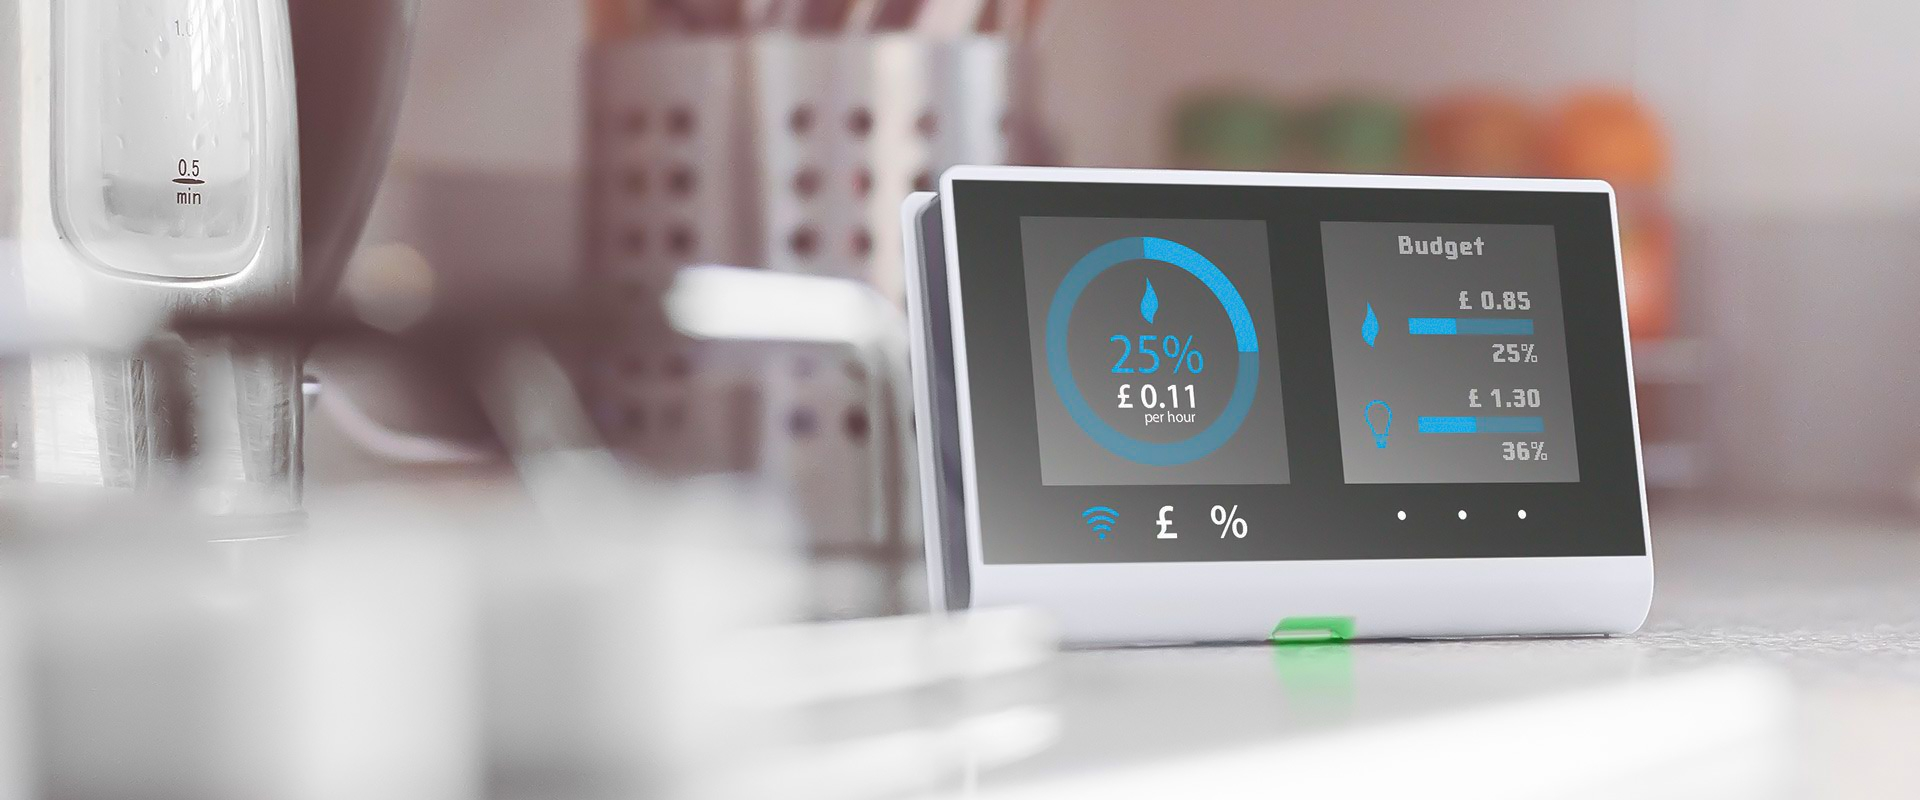 The roll-out of second generation electric smart meters